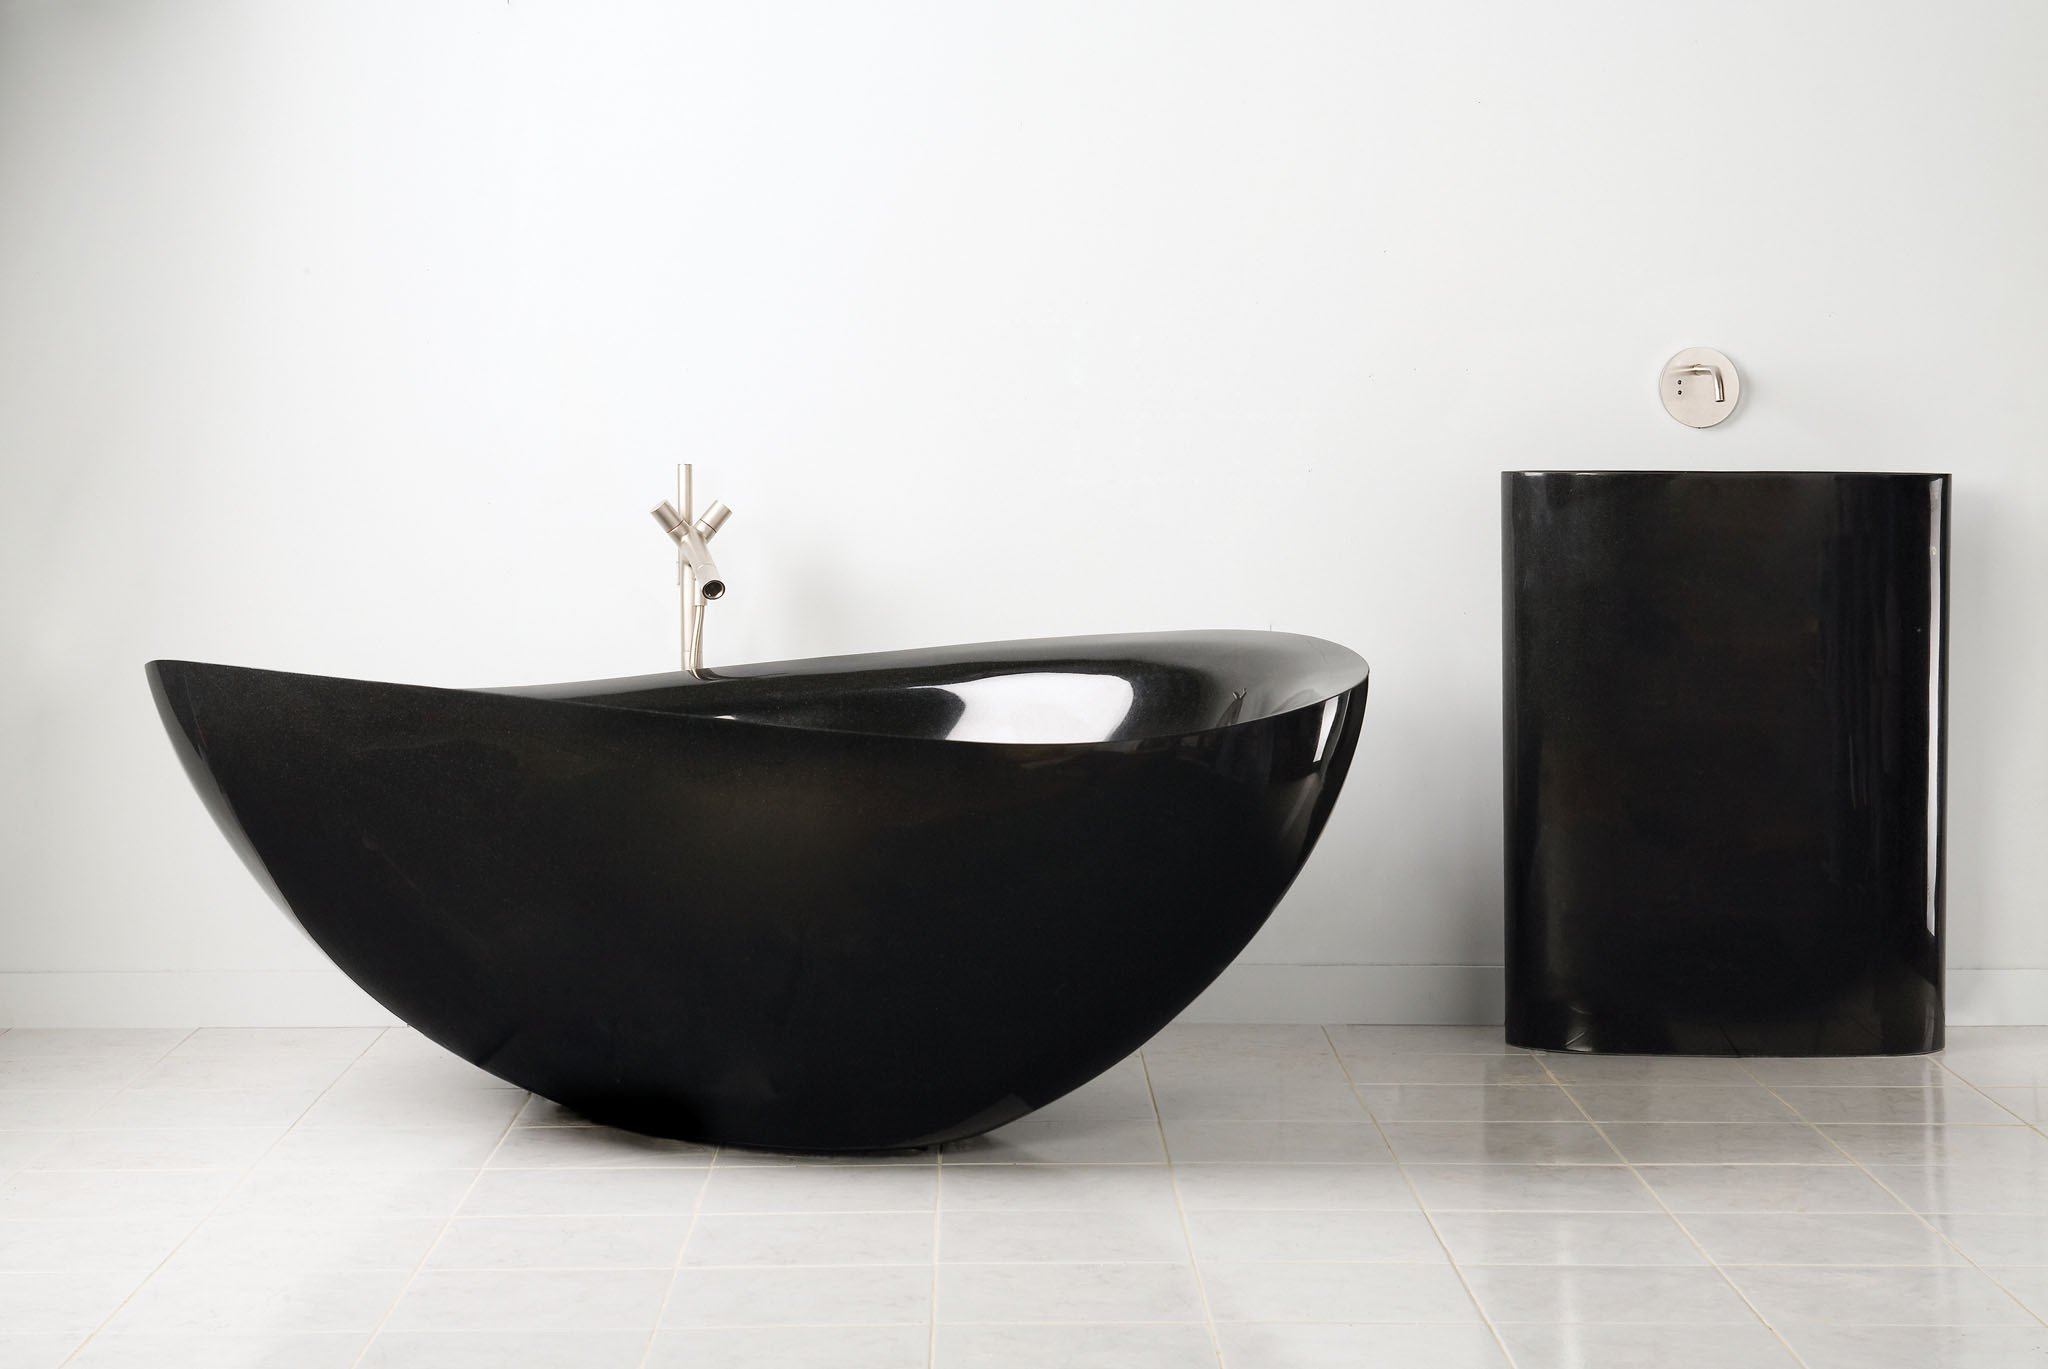 Luxury Bathroom Brands luxury bathroom brands Best Luxury Bathroom Brands Stone Forest C46 68 BL Papillon Bathtub